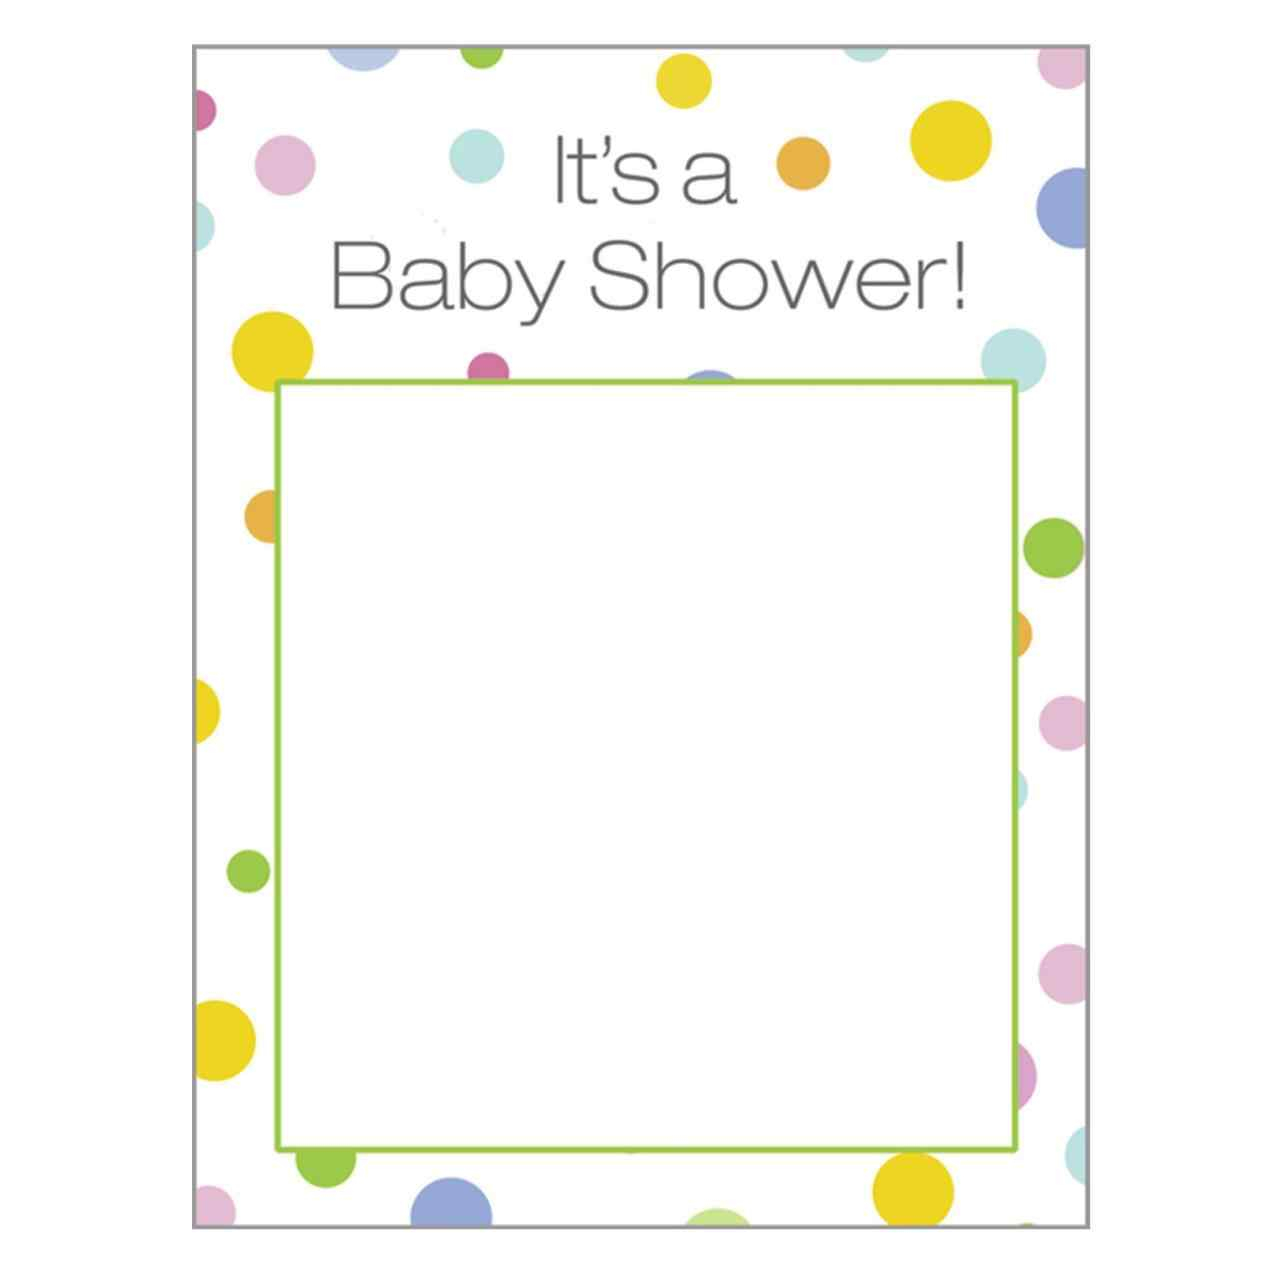 Elite Baby Shower Clip Art Border Border Cliparts Free Download Clip Art intended for Baby Shower Borders